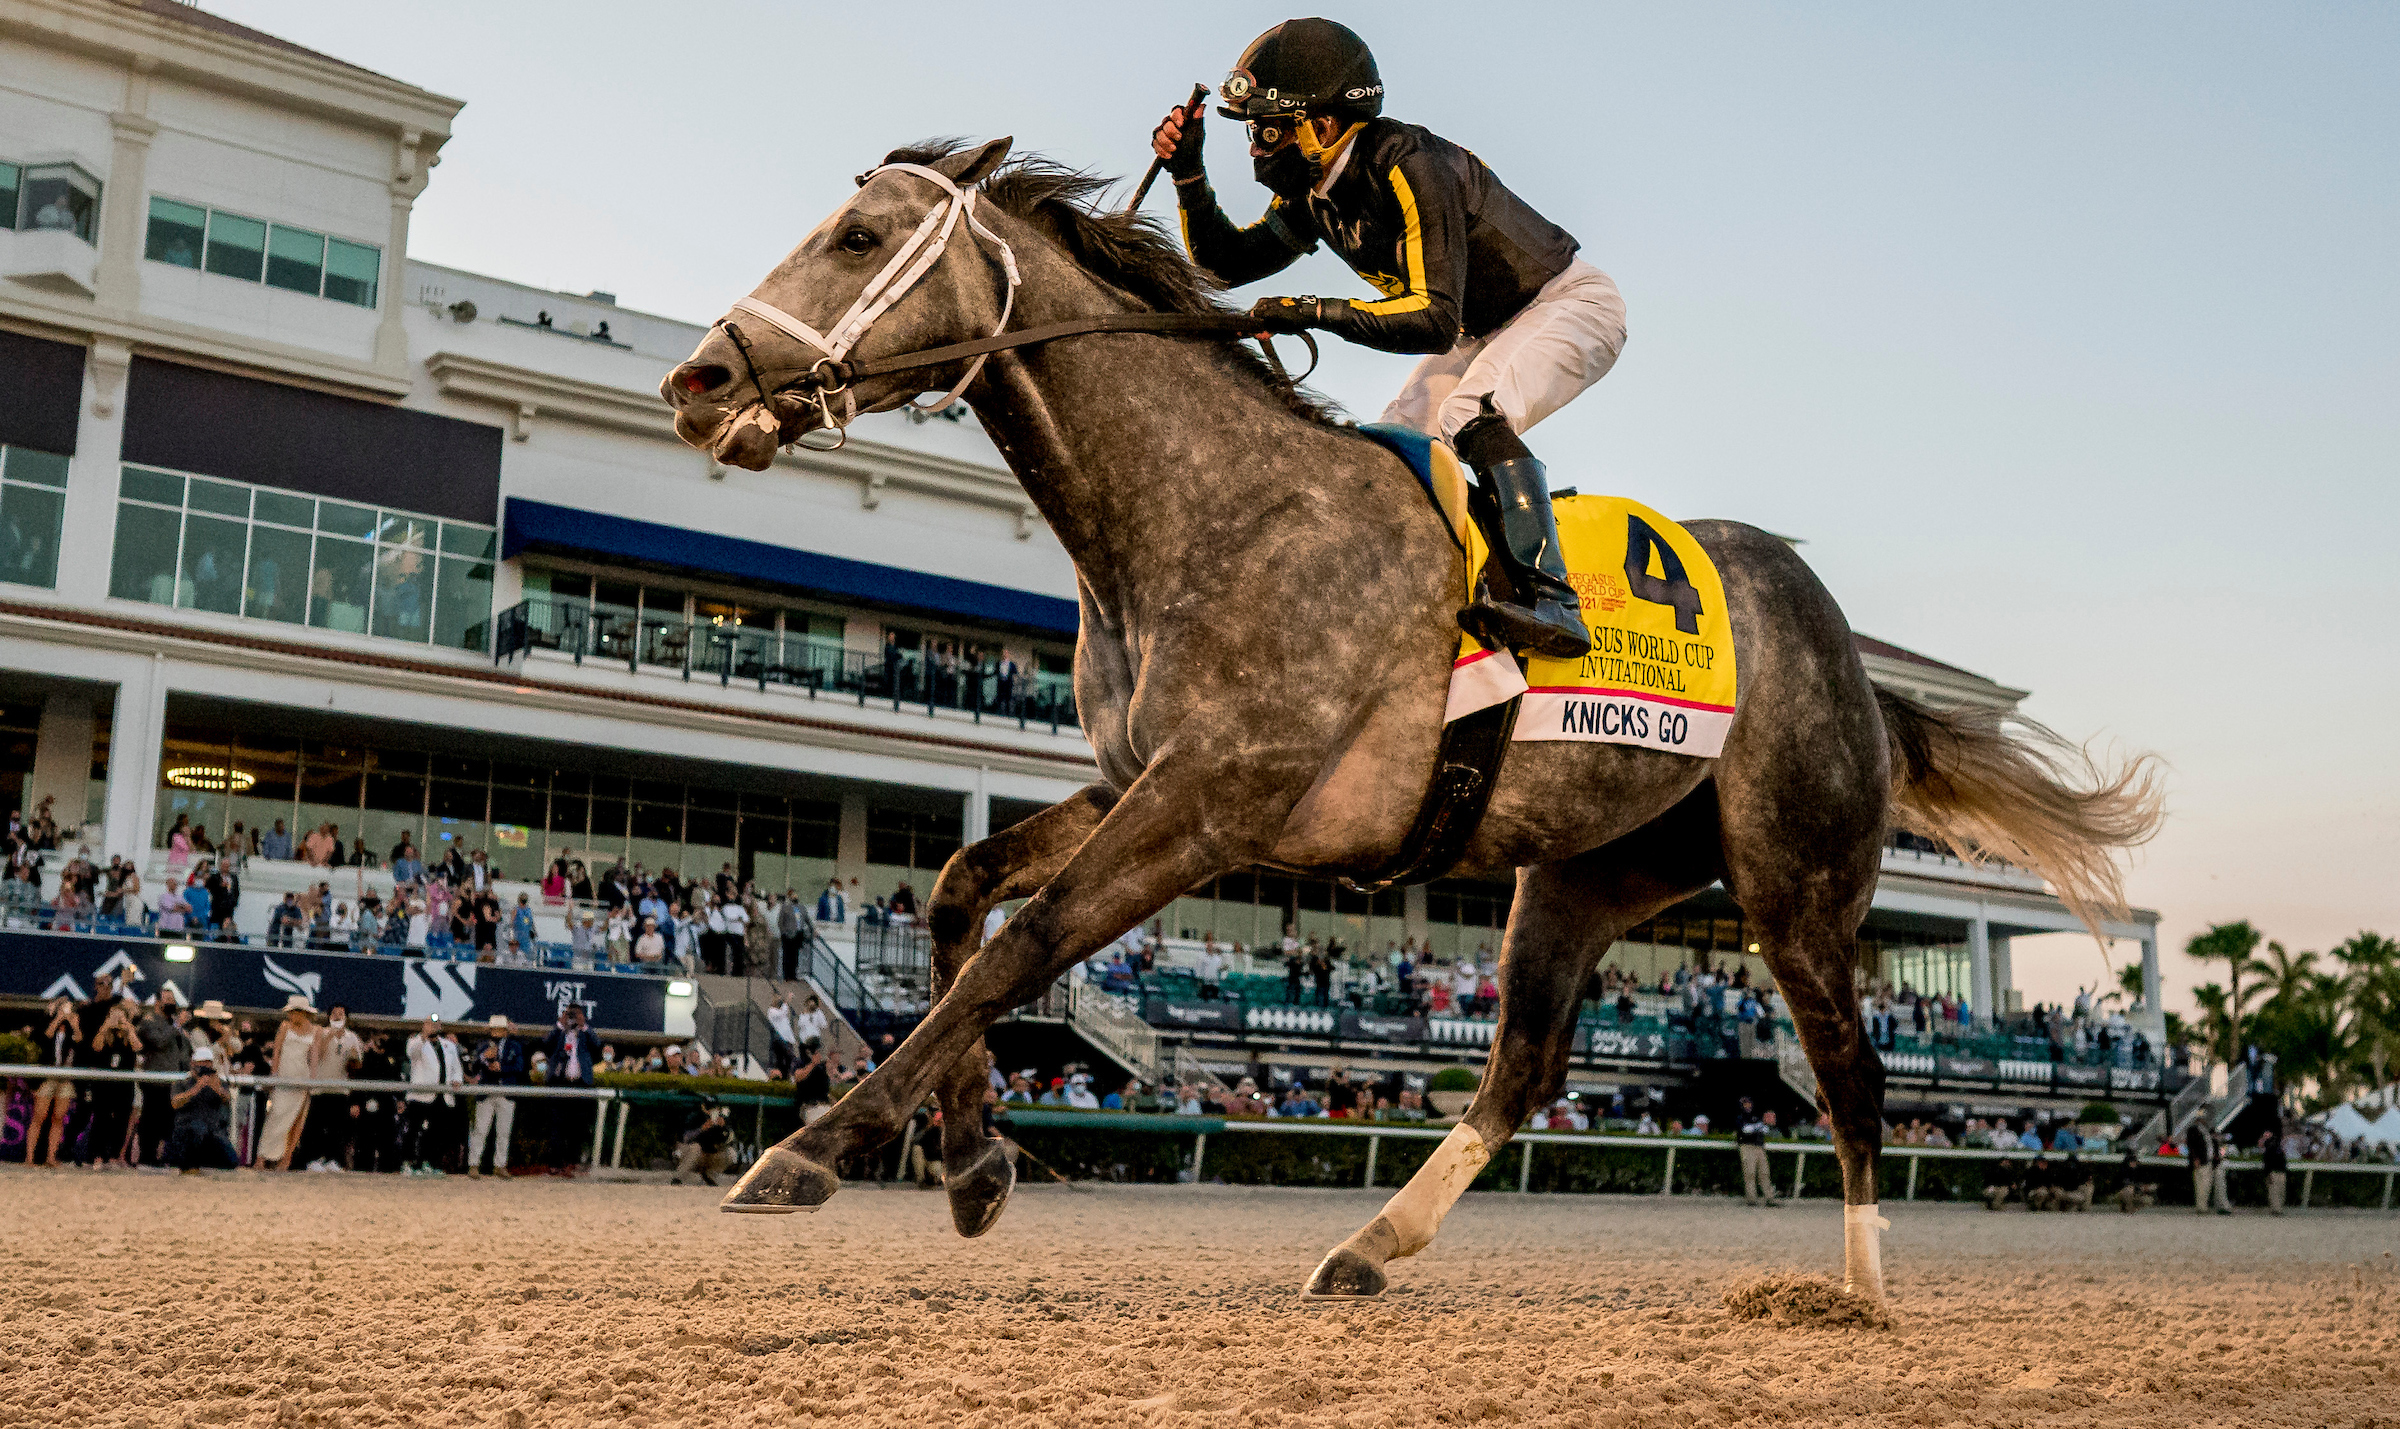 Pegasus World Cup (Gr1) : Knicks Go par K.O.